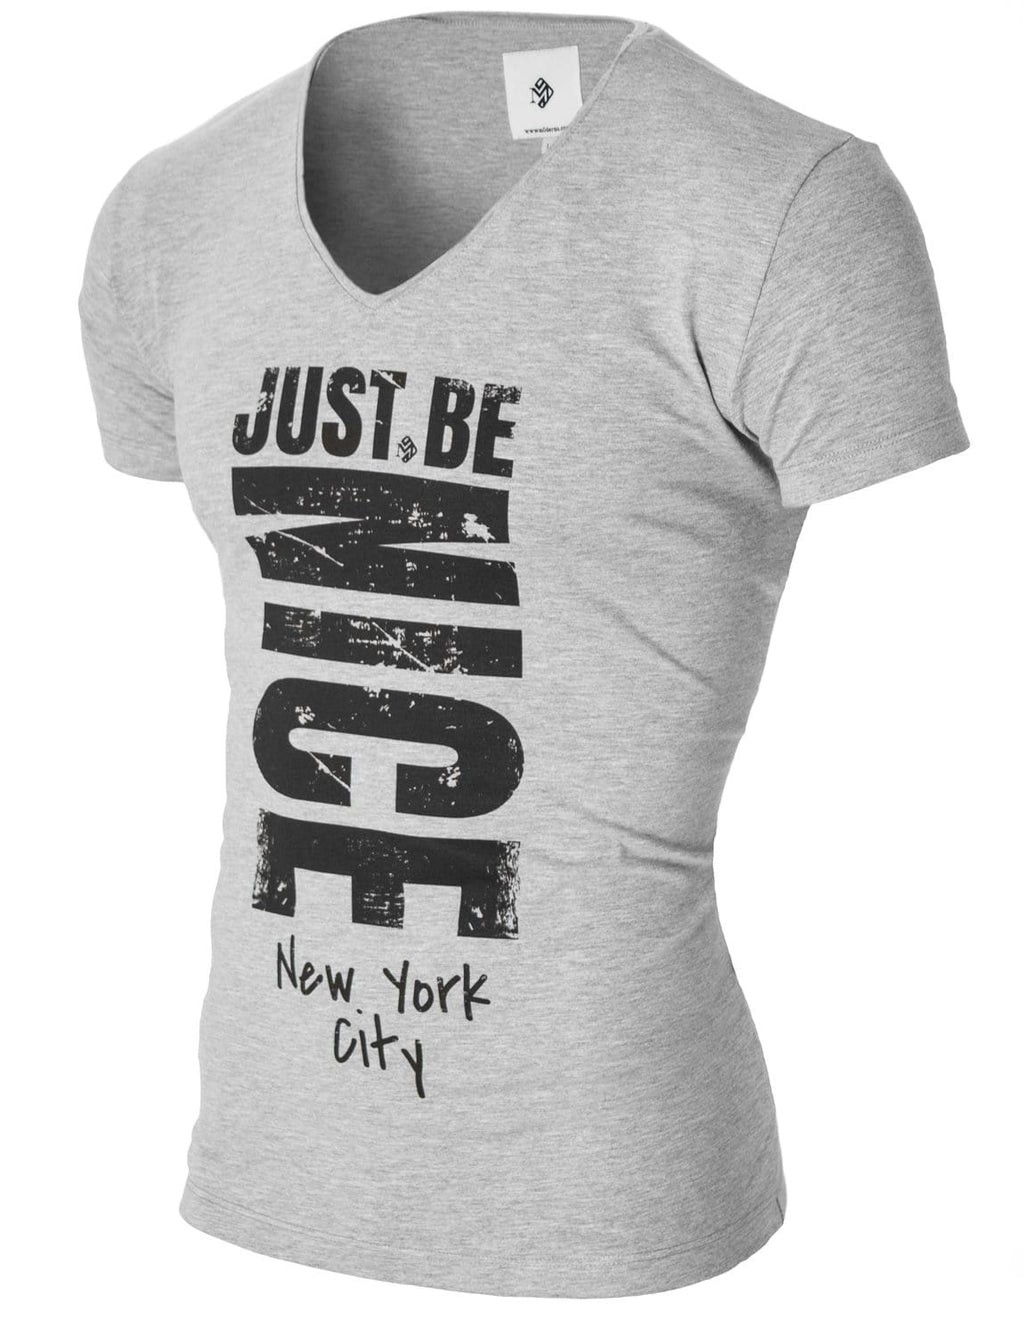 Mens Graphic Tee Slogan Print Gray (MOD2002VN)